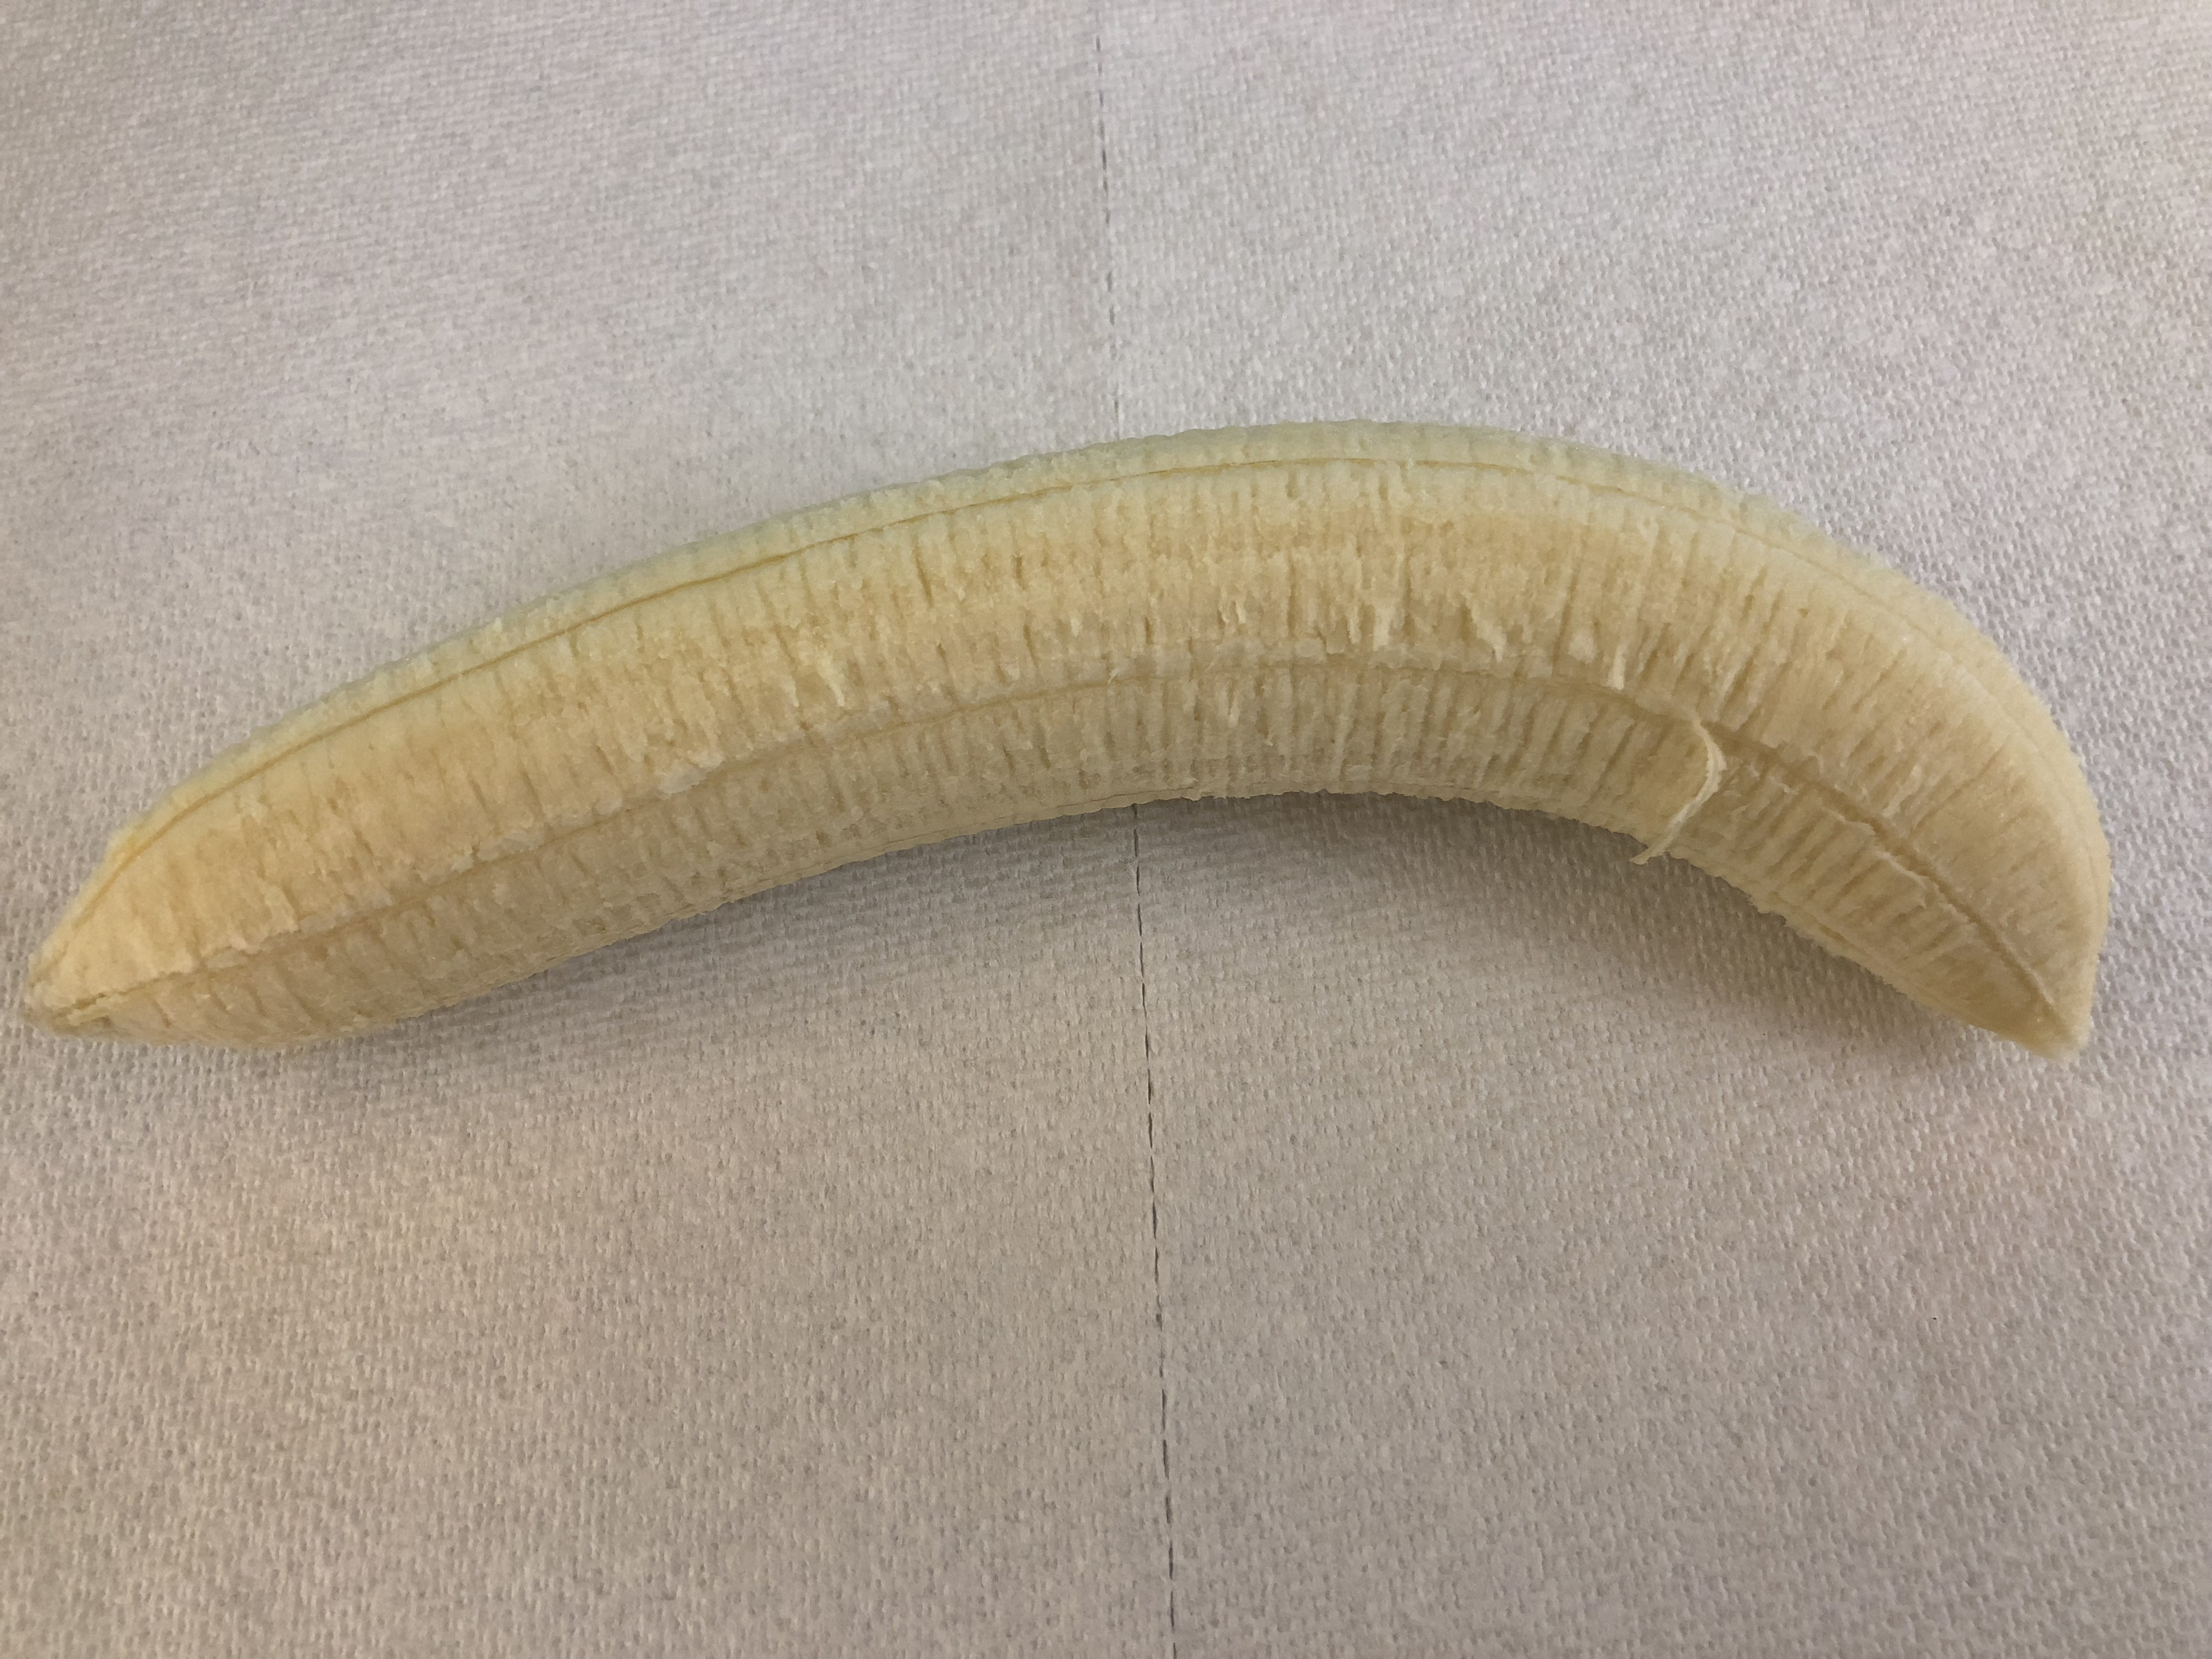 Image result for fully peeled banana